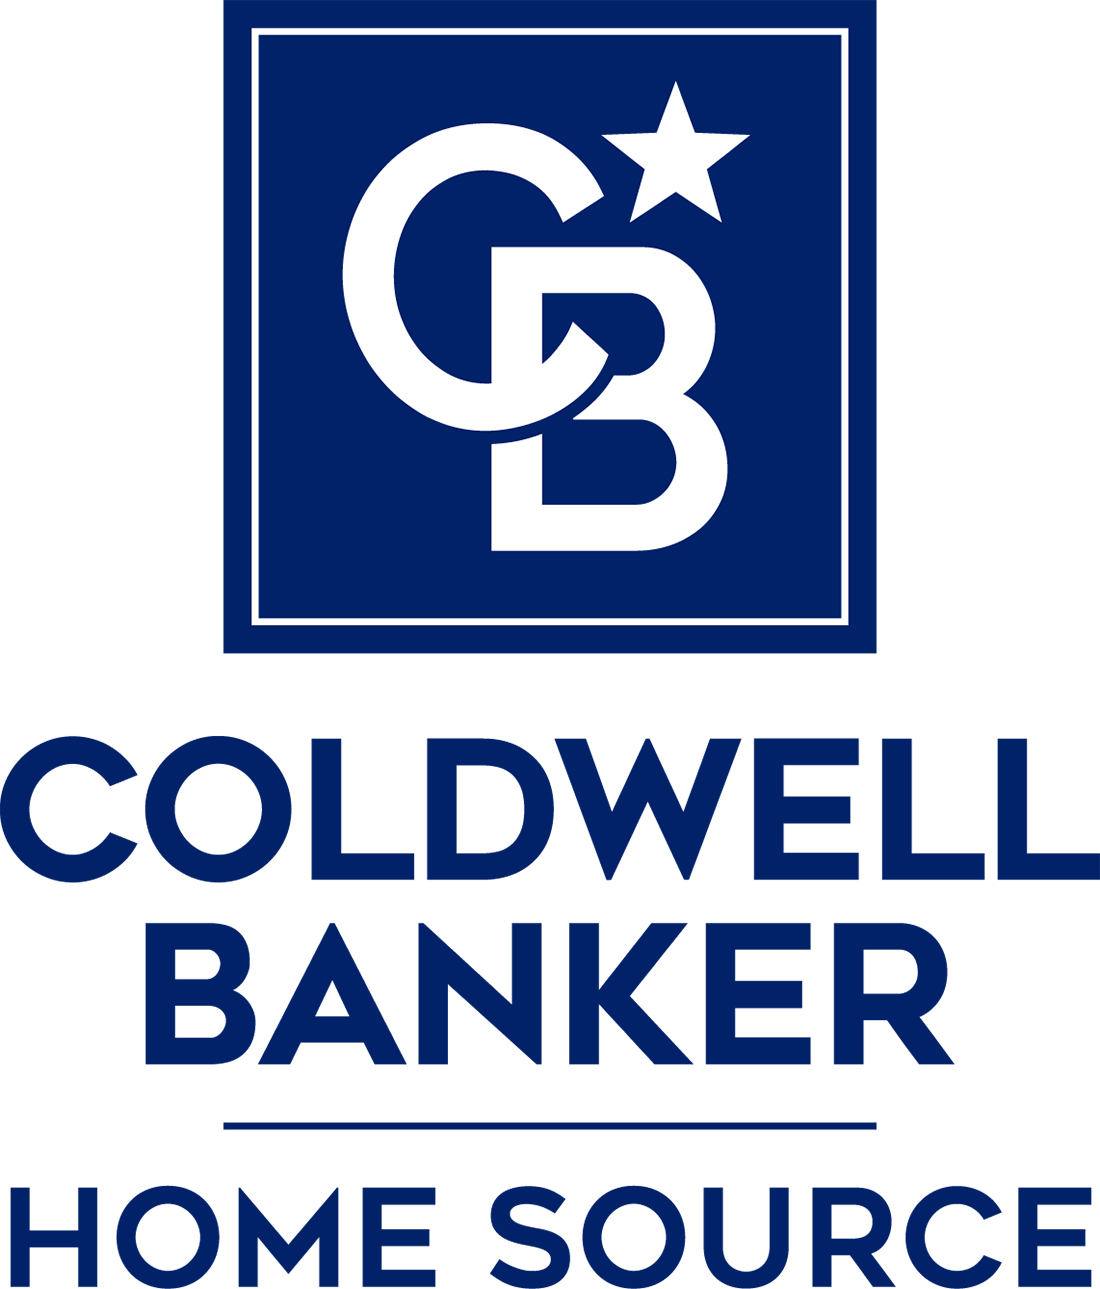 Janie Phillips - Coldwell Banker Home Source Logo